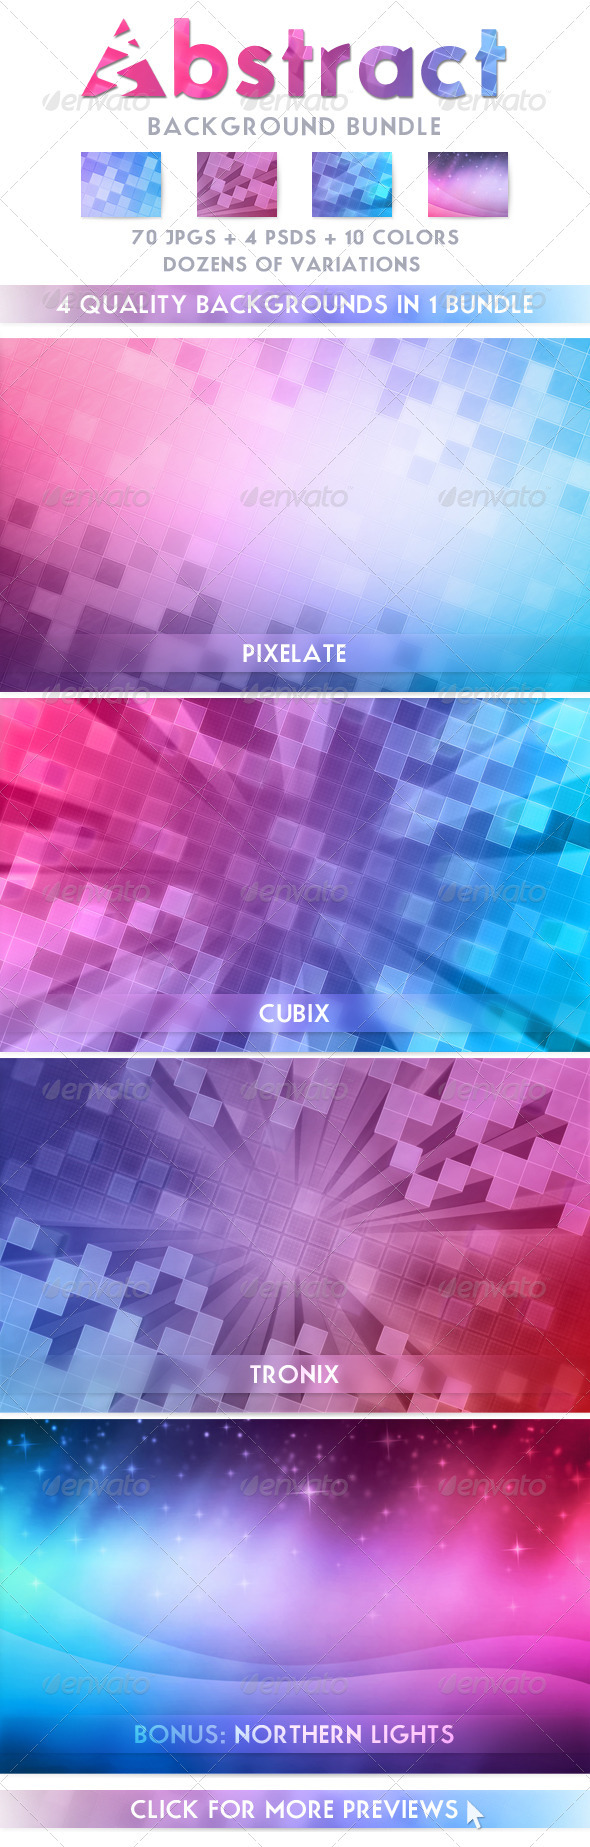 Abstract Background Bundle - Abstract Backgrounds